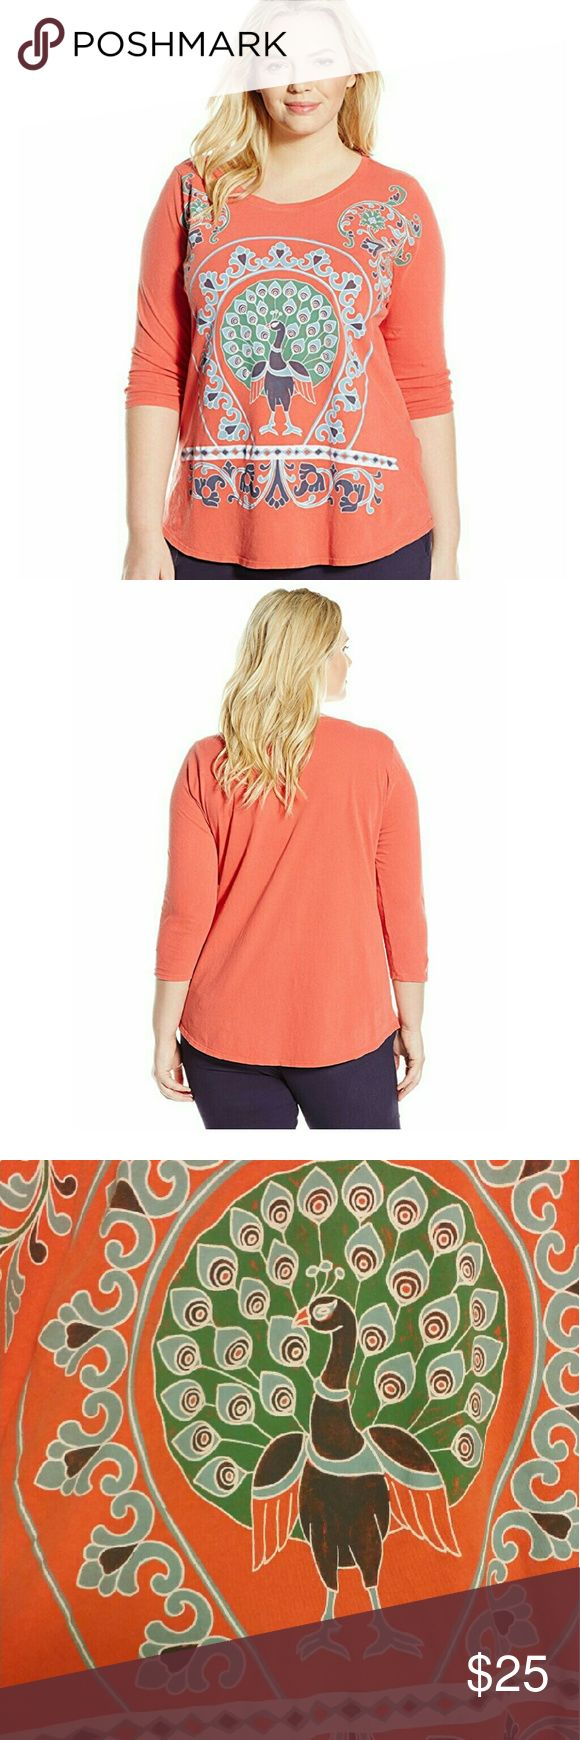 Lucky Brand Peacock Shirt Coral in color.  Peacock design. 3/4 Sleeve Never Worn. Purchased for $39.50 NWT Lucky Brand Tops Tees - Short Sleeve